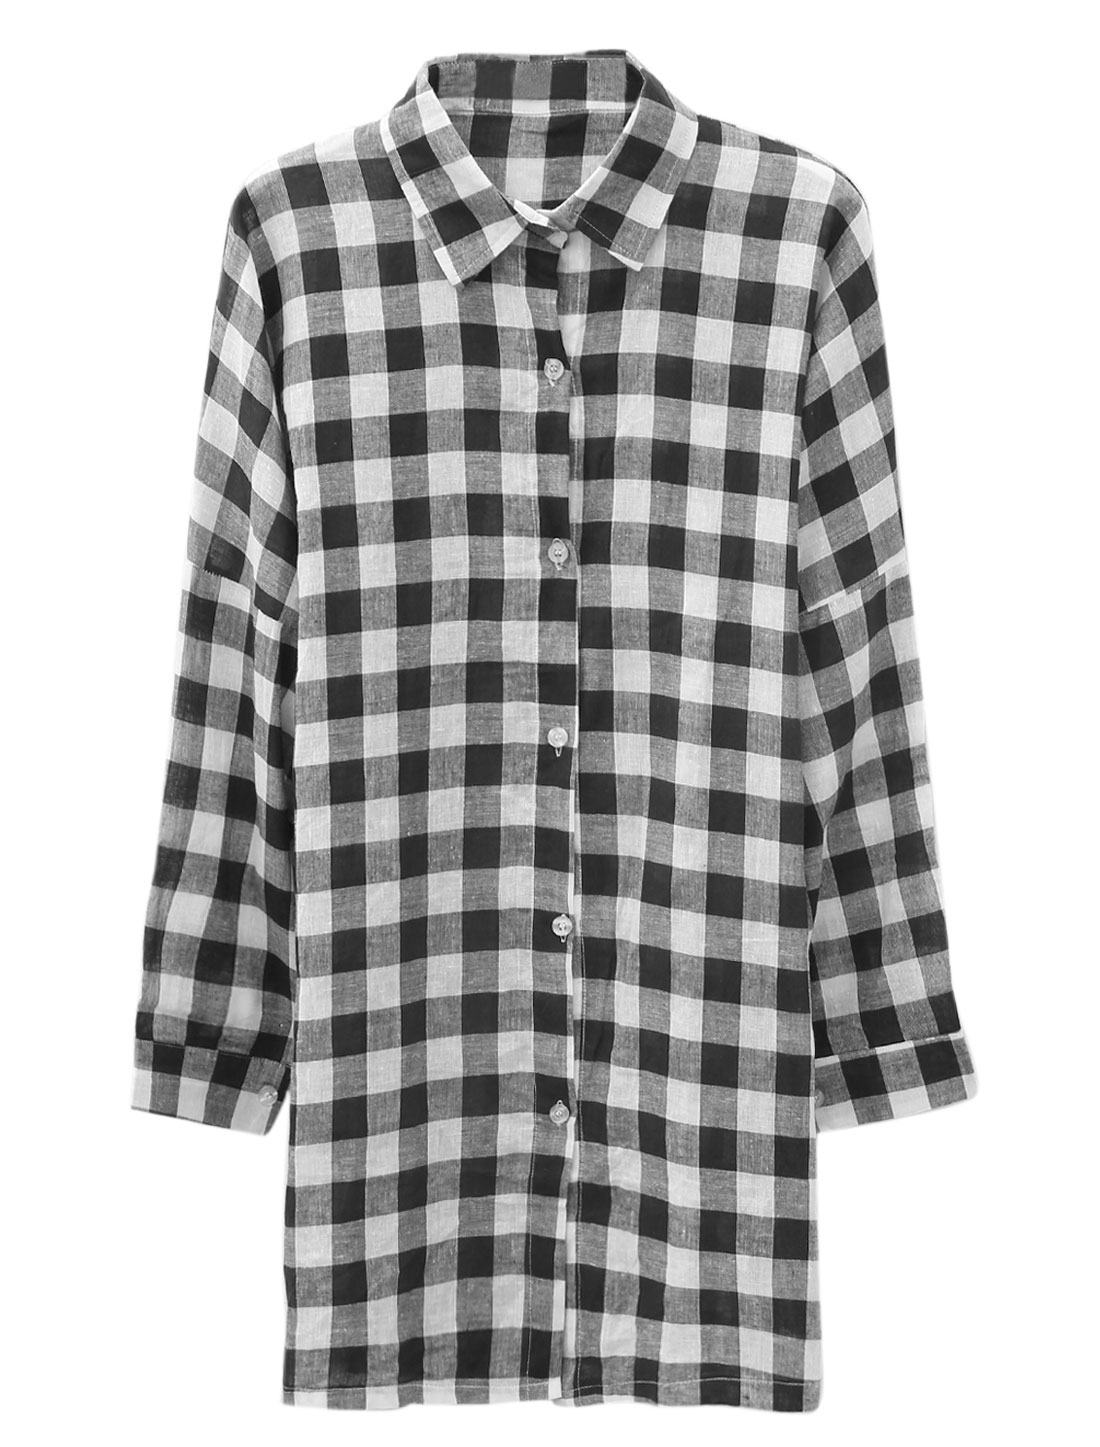 Lady Point Collar Plaids Pattern Single Breasted Casual Shirt Black White M